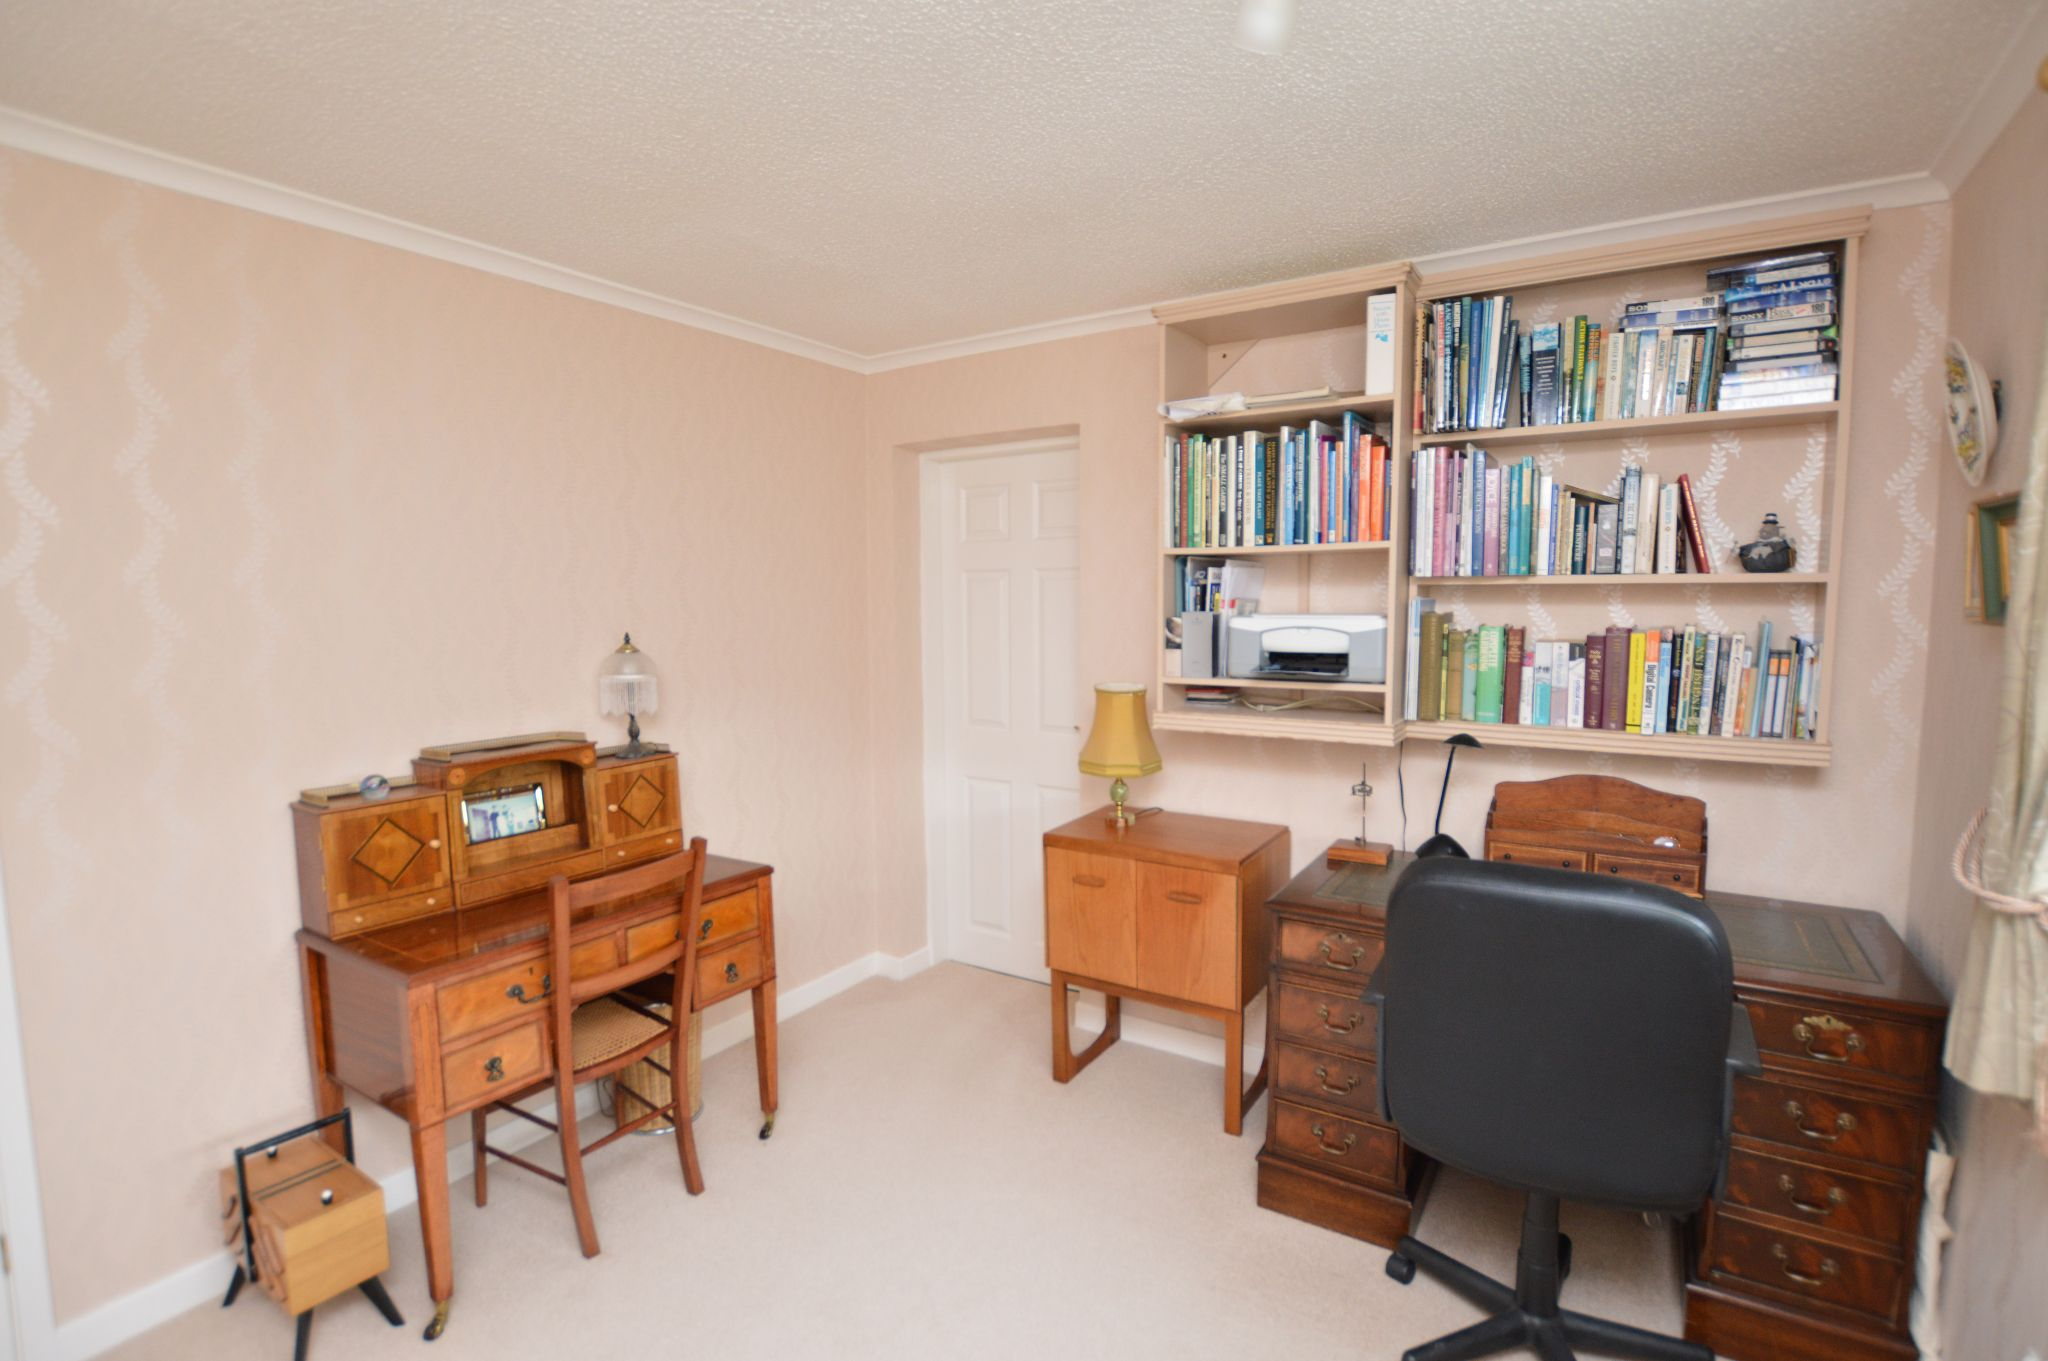 4 bedroom detached house For Sale in Abergele - Bedroom 4 View 2